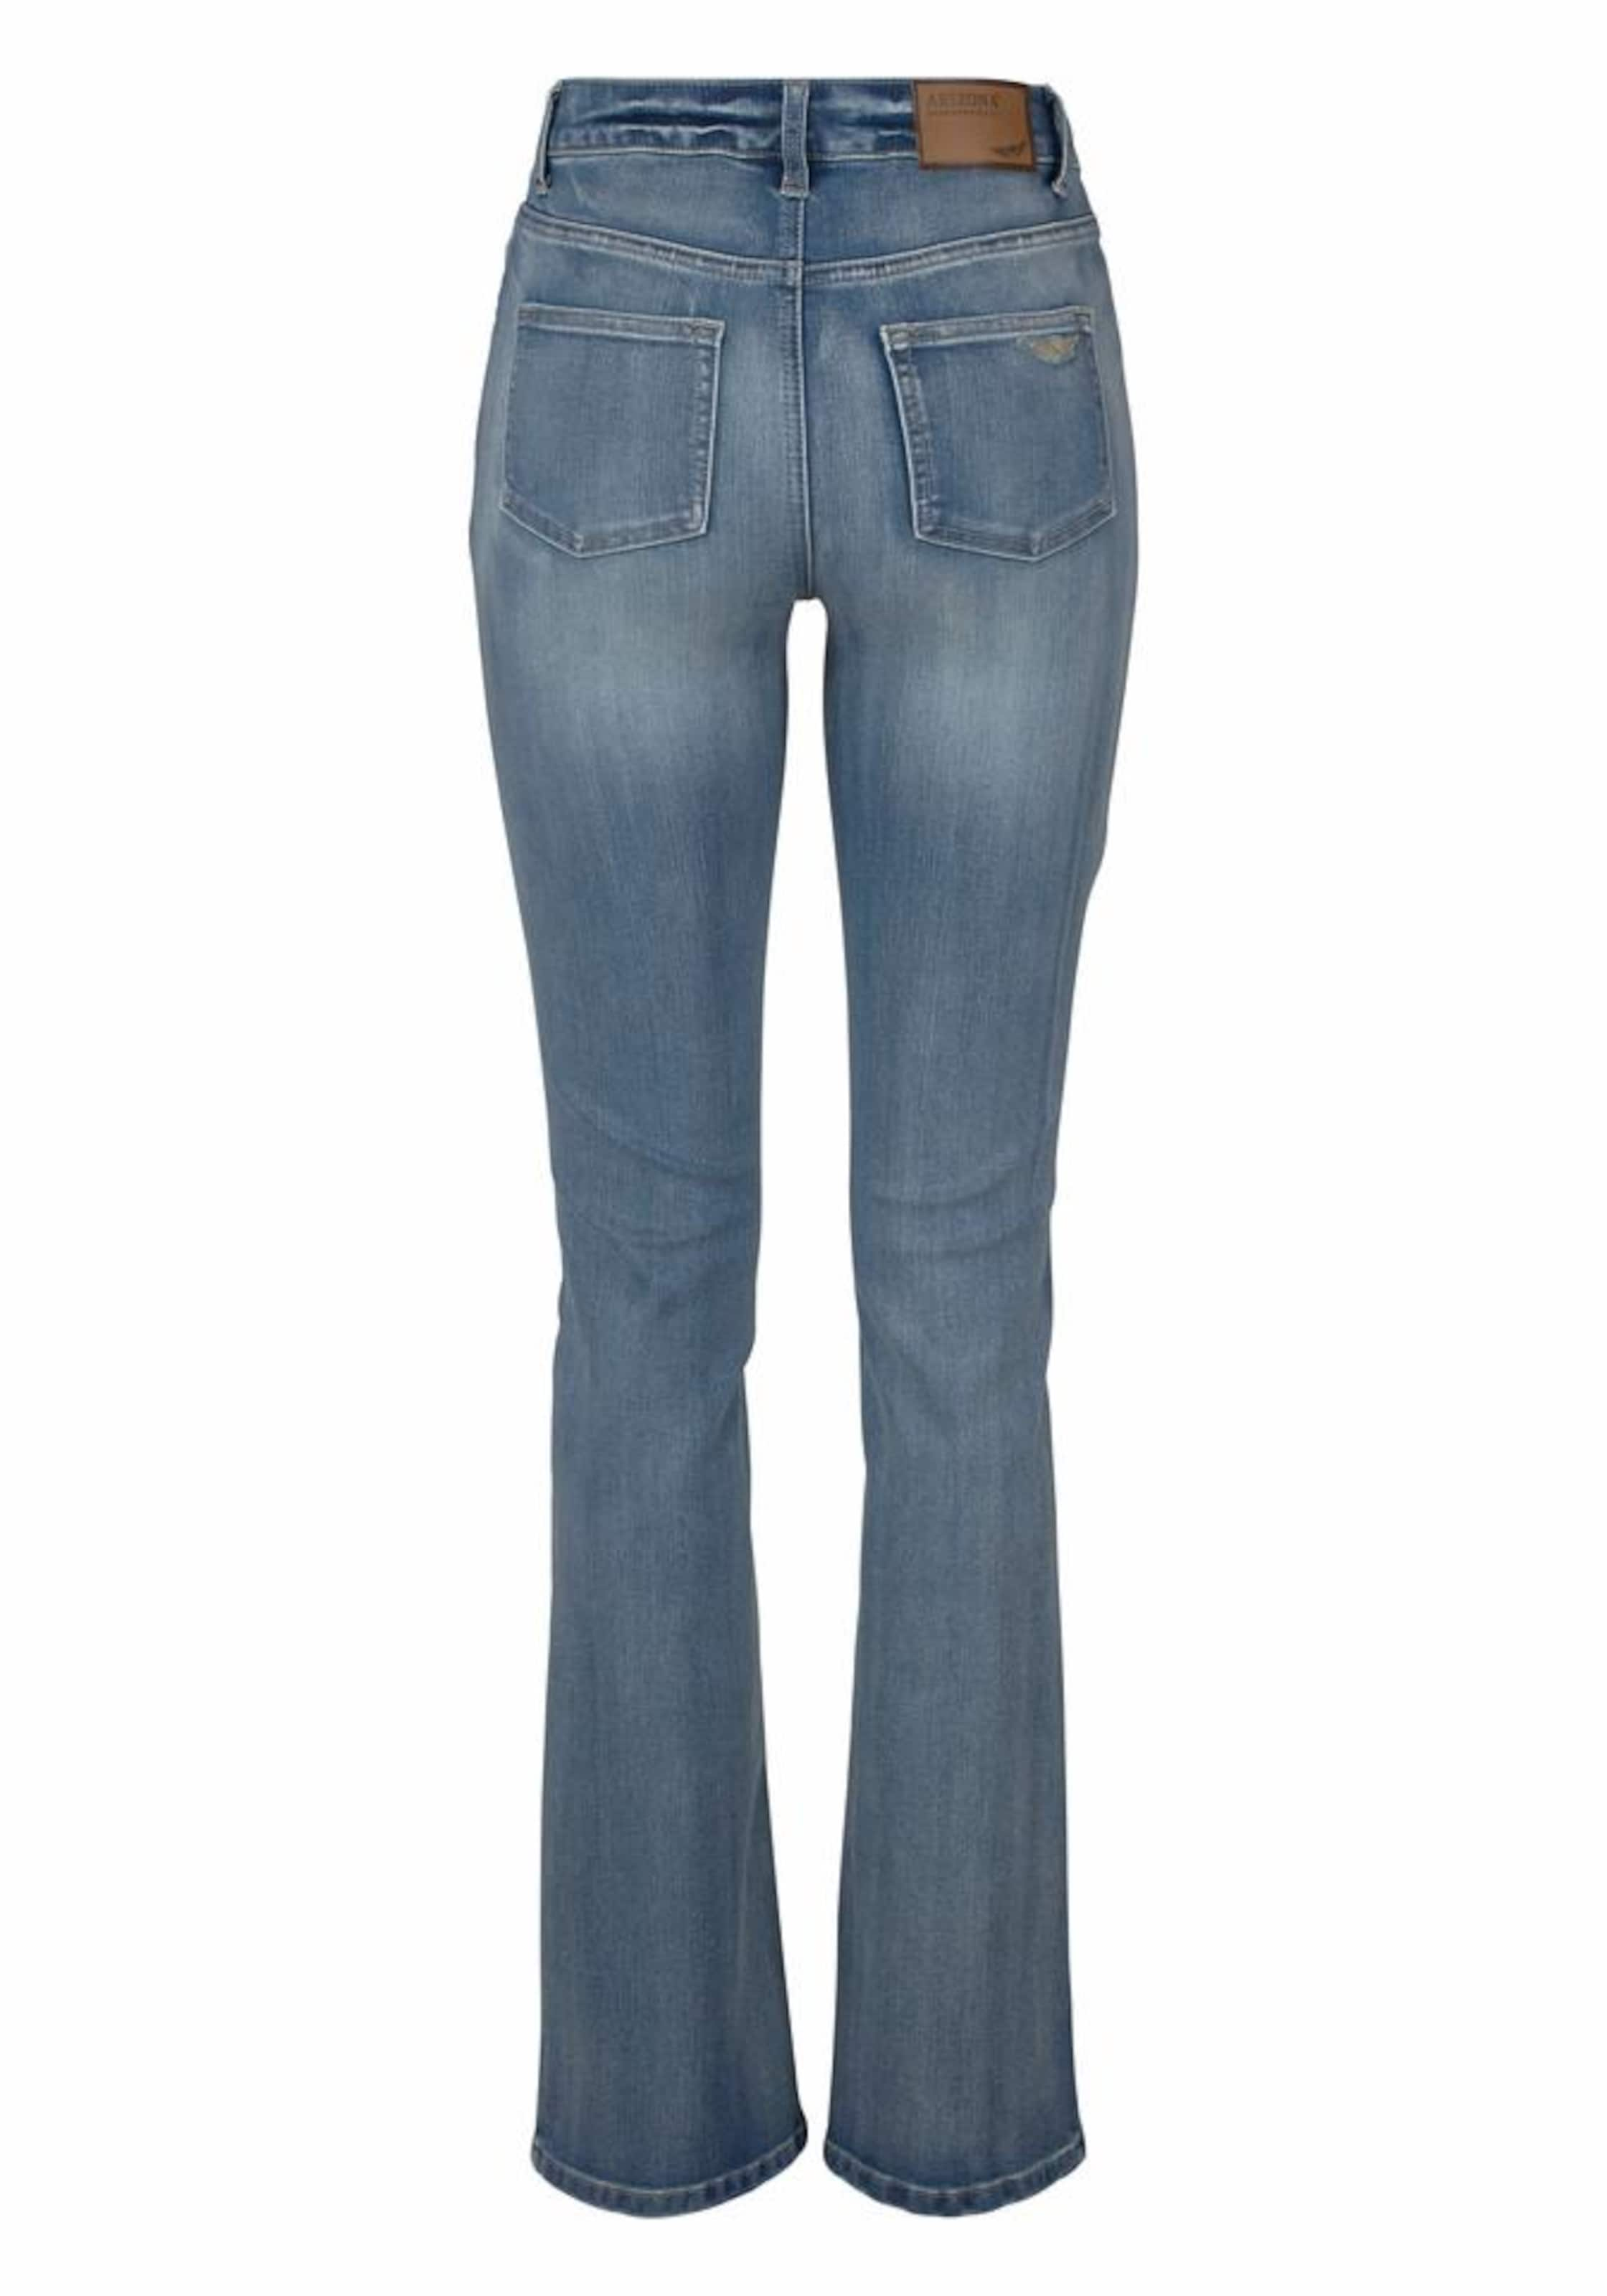 jeans Arizona Bootcut In Blau »bootcut« gb76Yfy